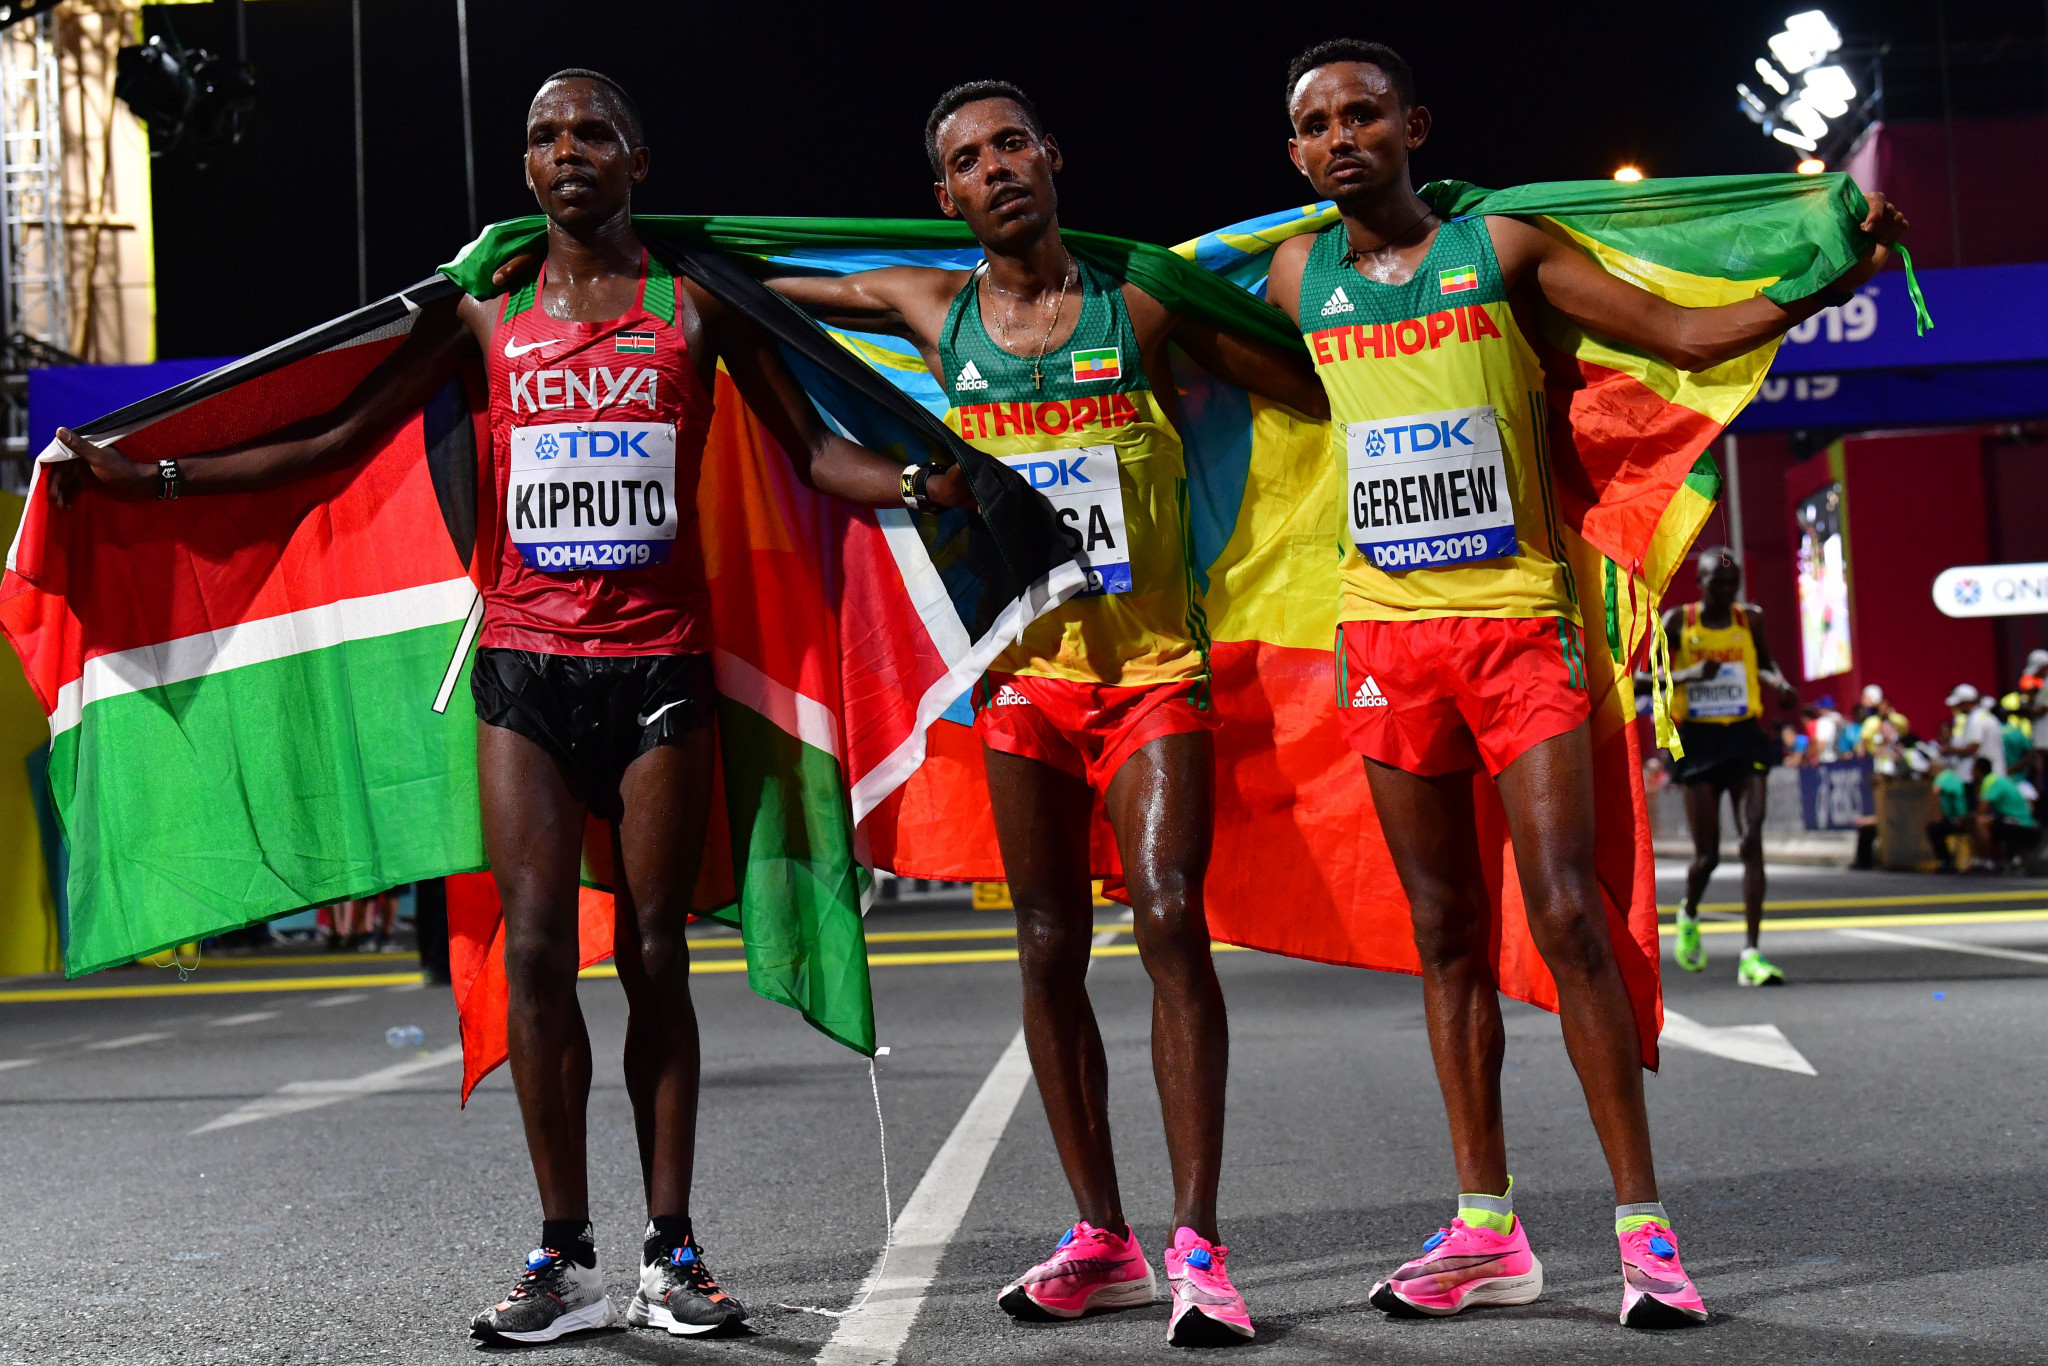 East Africa is considered the powerhouse region of long-distance running ©Getty Images